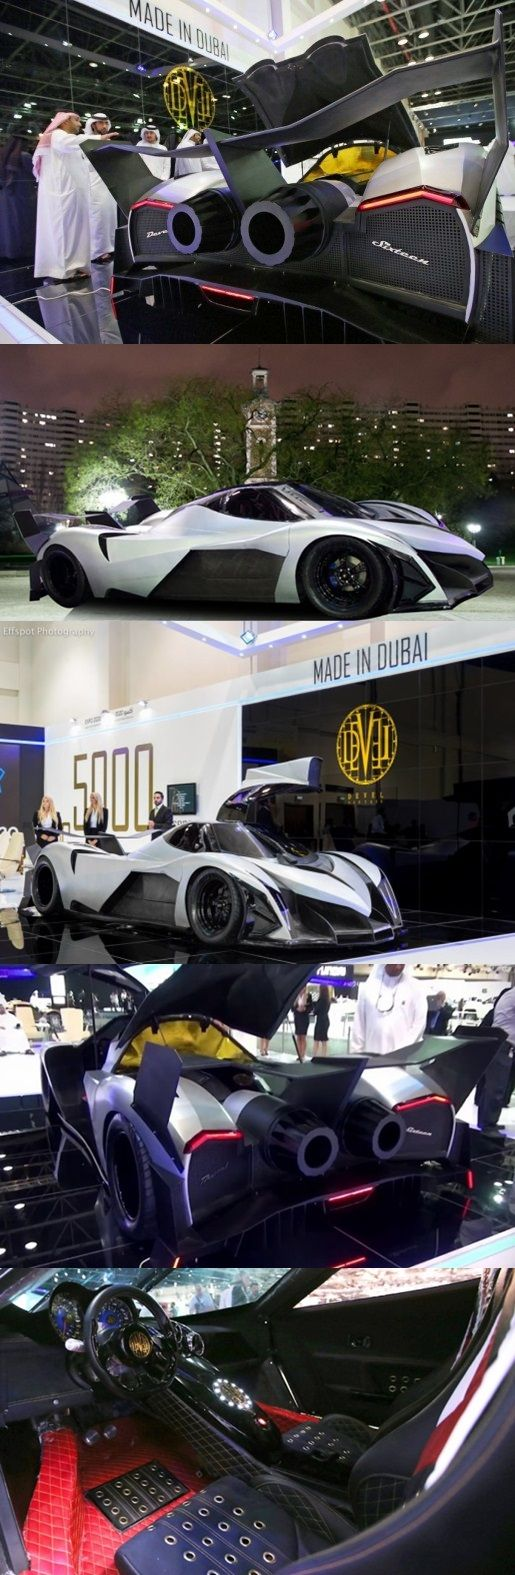 ★ Visit ~ MACHINE Shop Café ★ (Devel Sixteen Hyper-Claims 5,000HP, 0-100 KM/H in 1.8 Seconds and 560km/h)